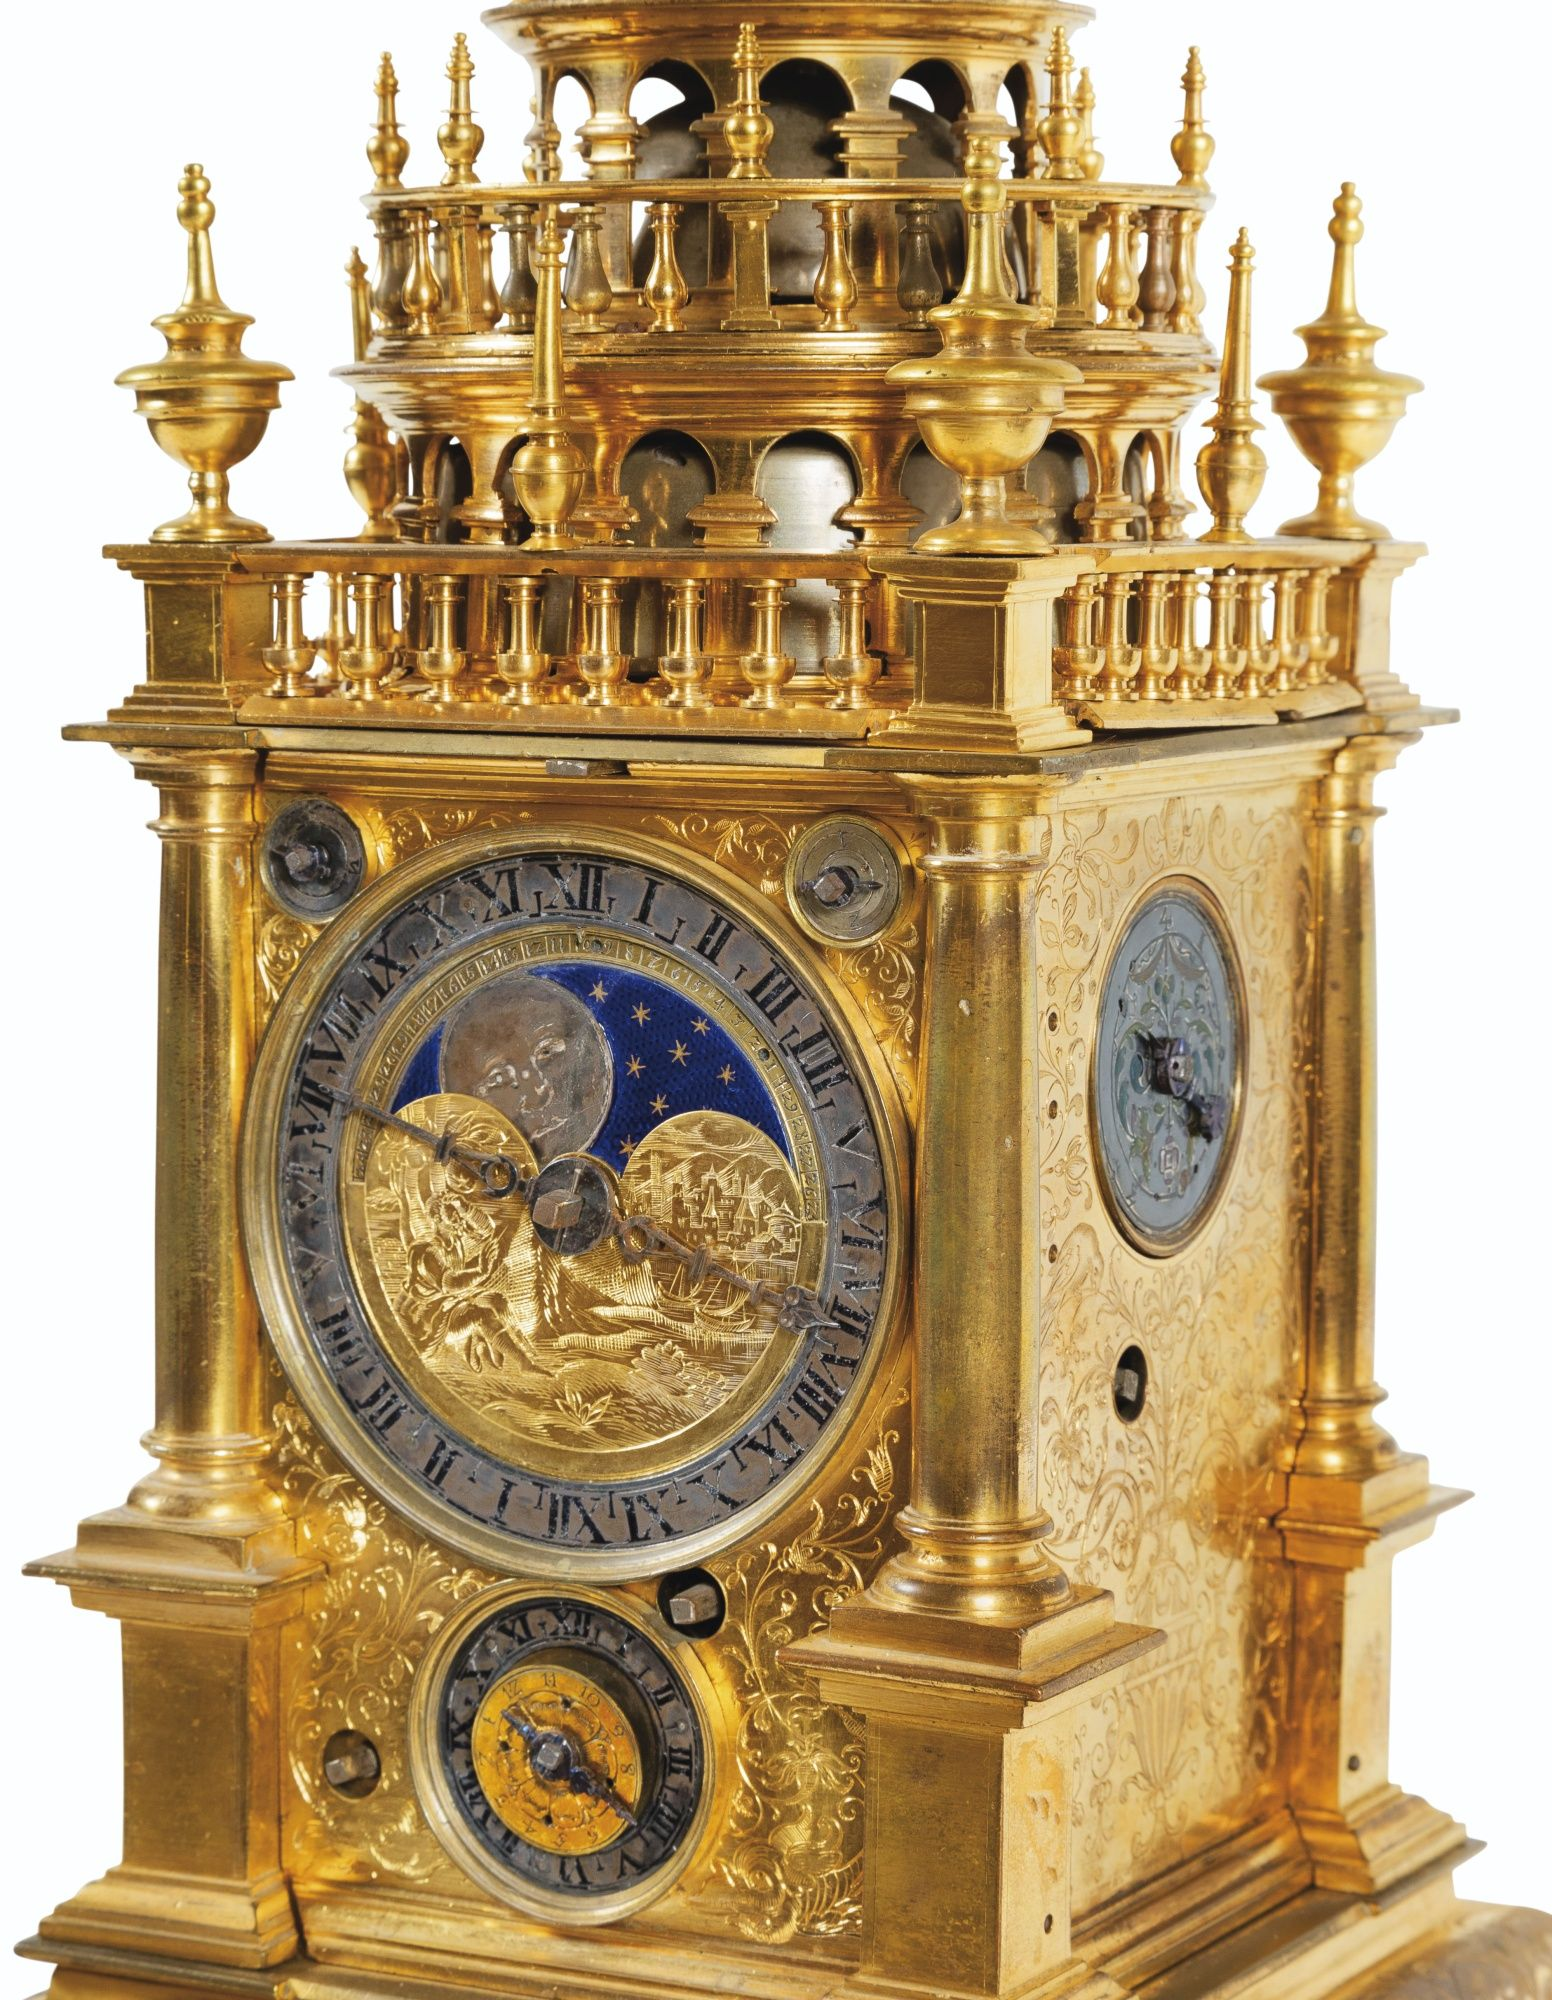 sold eur 81 000 large brass table clock or turmchenuhr with